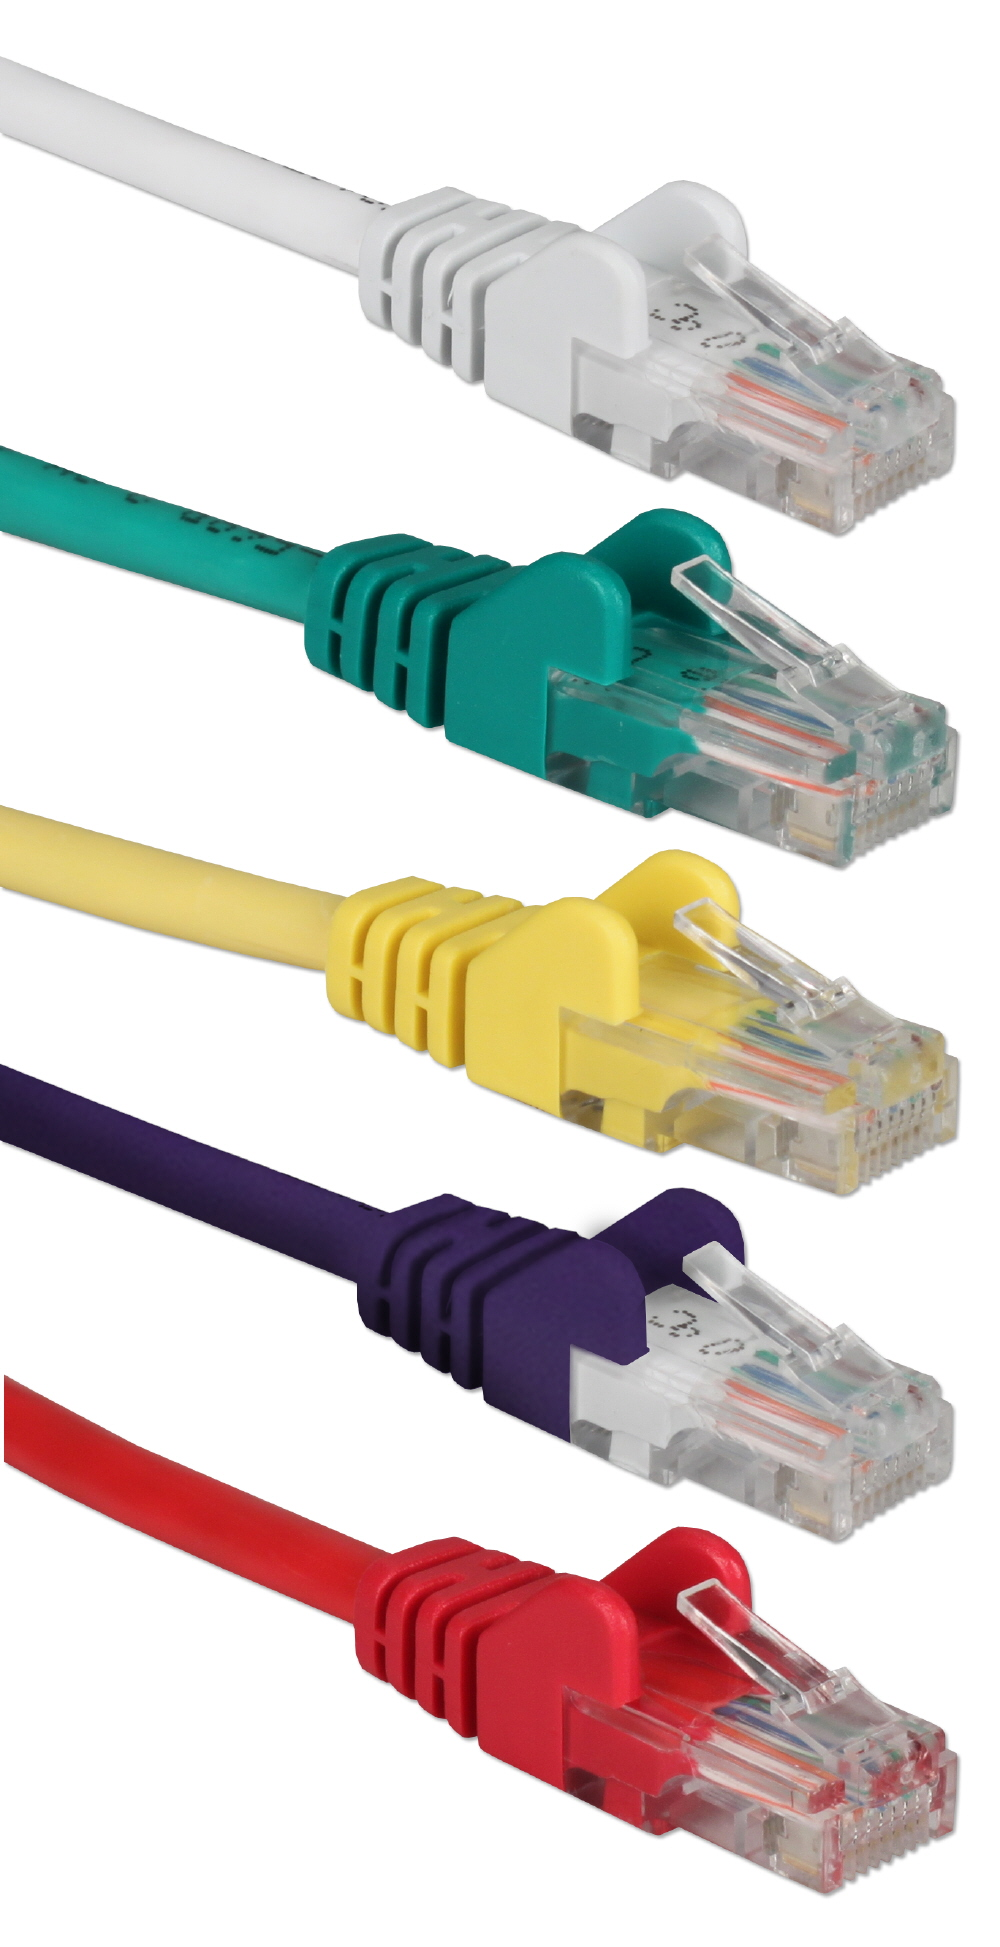 5-Pack 3ft 350MHz CAT5e/Ethernet Flexible Snagless Multi-Color Patch Cords CC5-03RP 037229710816 Cable, 5-Pack CAT5e/RJ45/UTP Ethernet LAN/Network Hub/DSL/CableModem/Patch Cord, Flexible/Stranded with Snagless/Molded Boots, Rainbow Colors, 3ft CC711-03 CC503RP CC5-03RP  cables feet foot